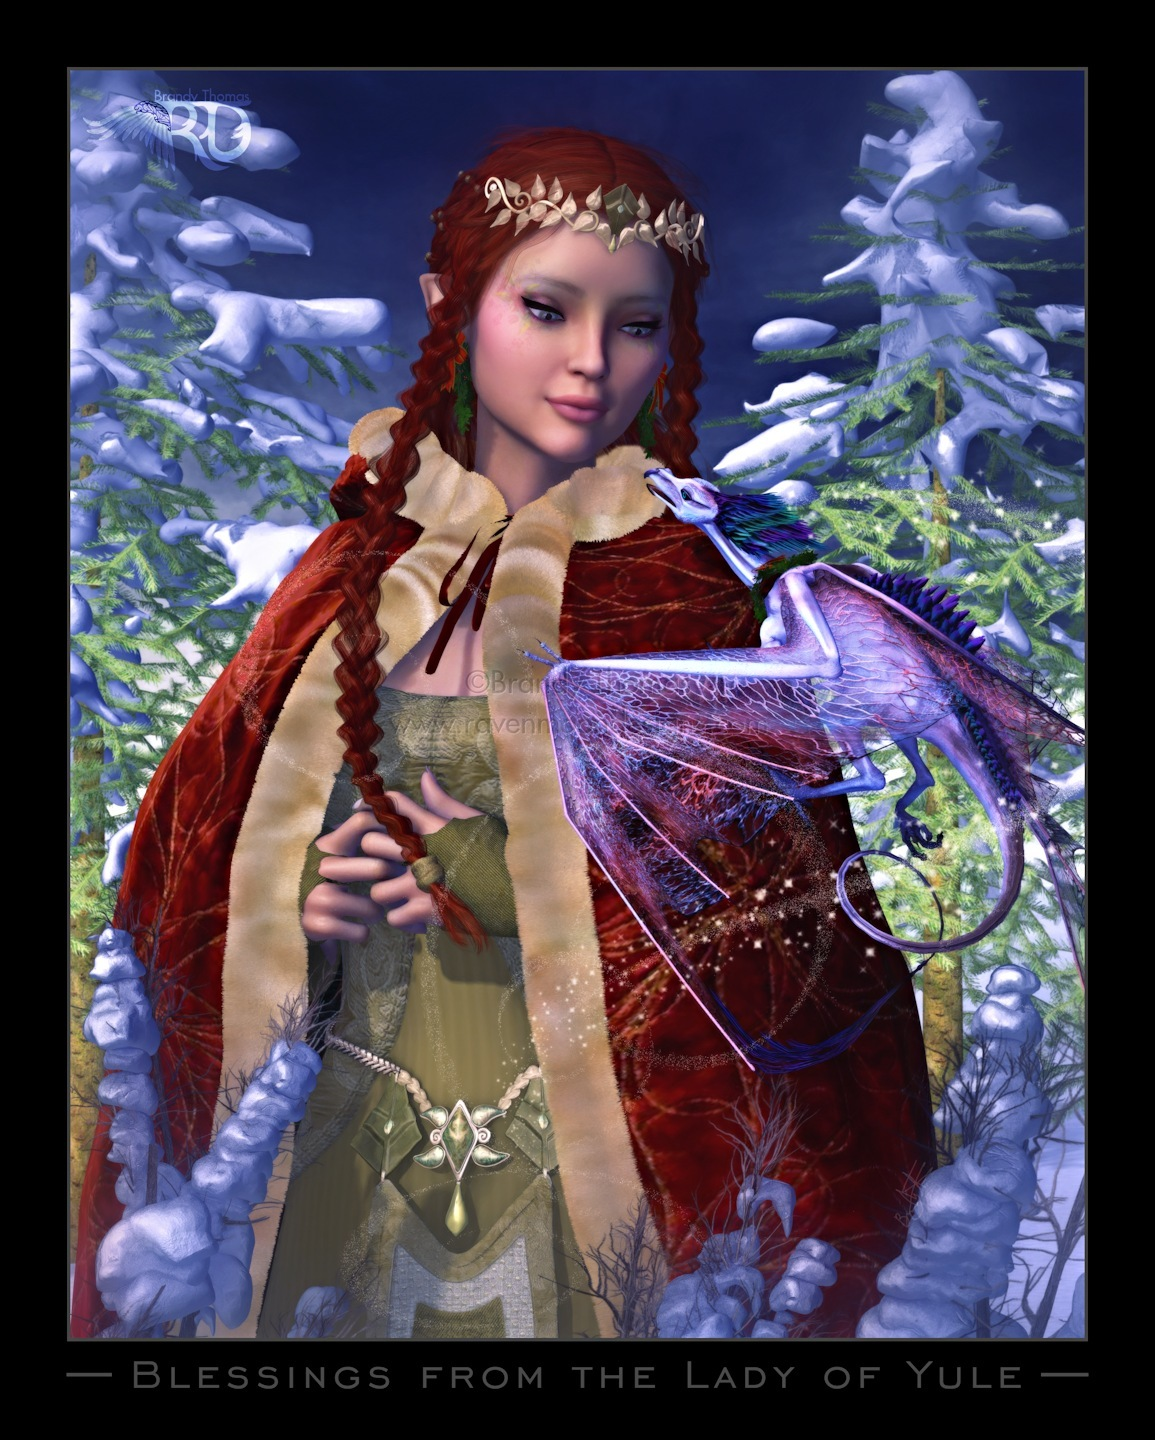 Blessings from the Lady of Yule by RavynGyrl